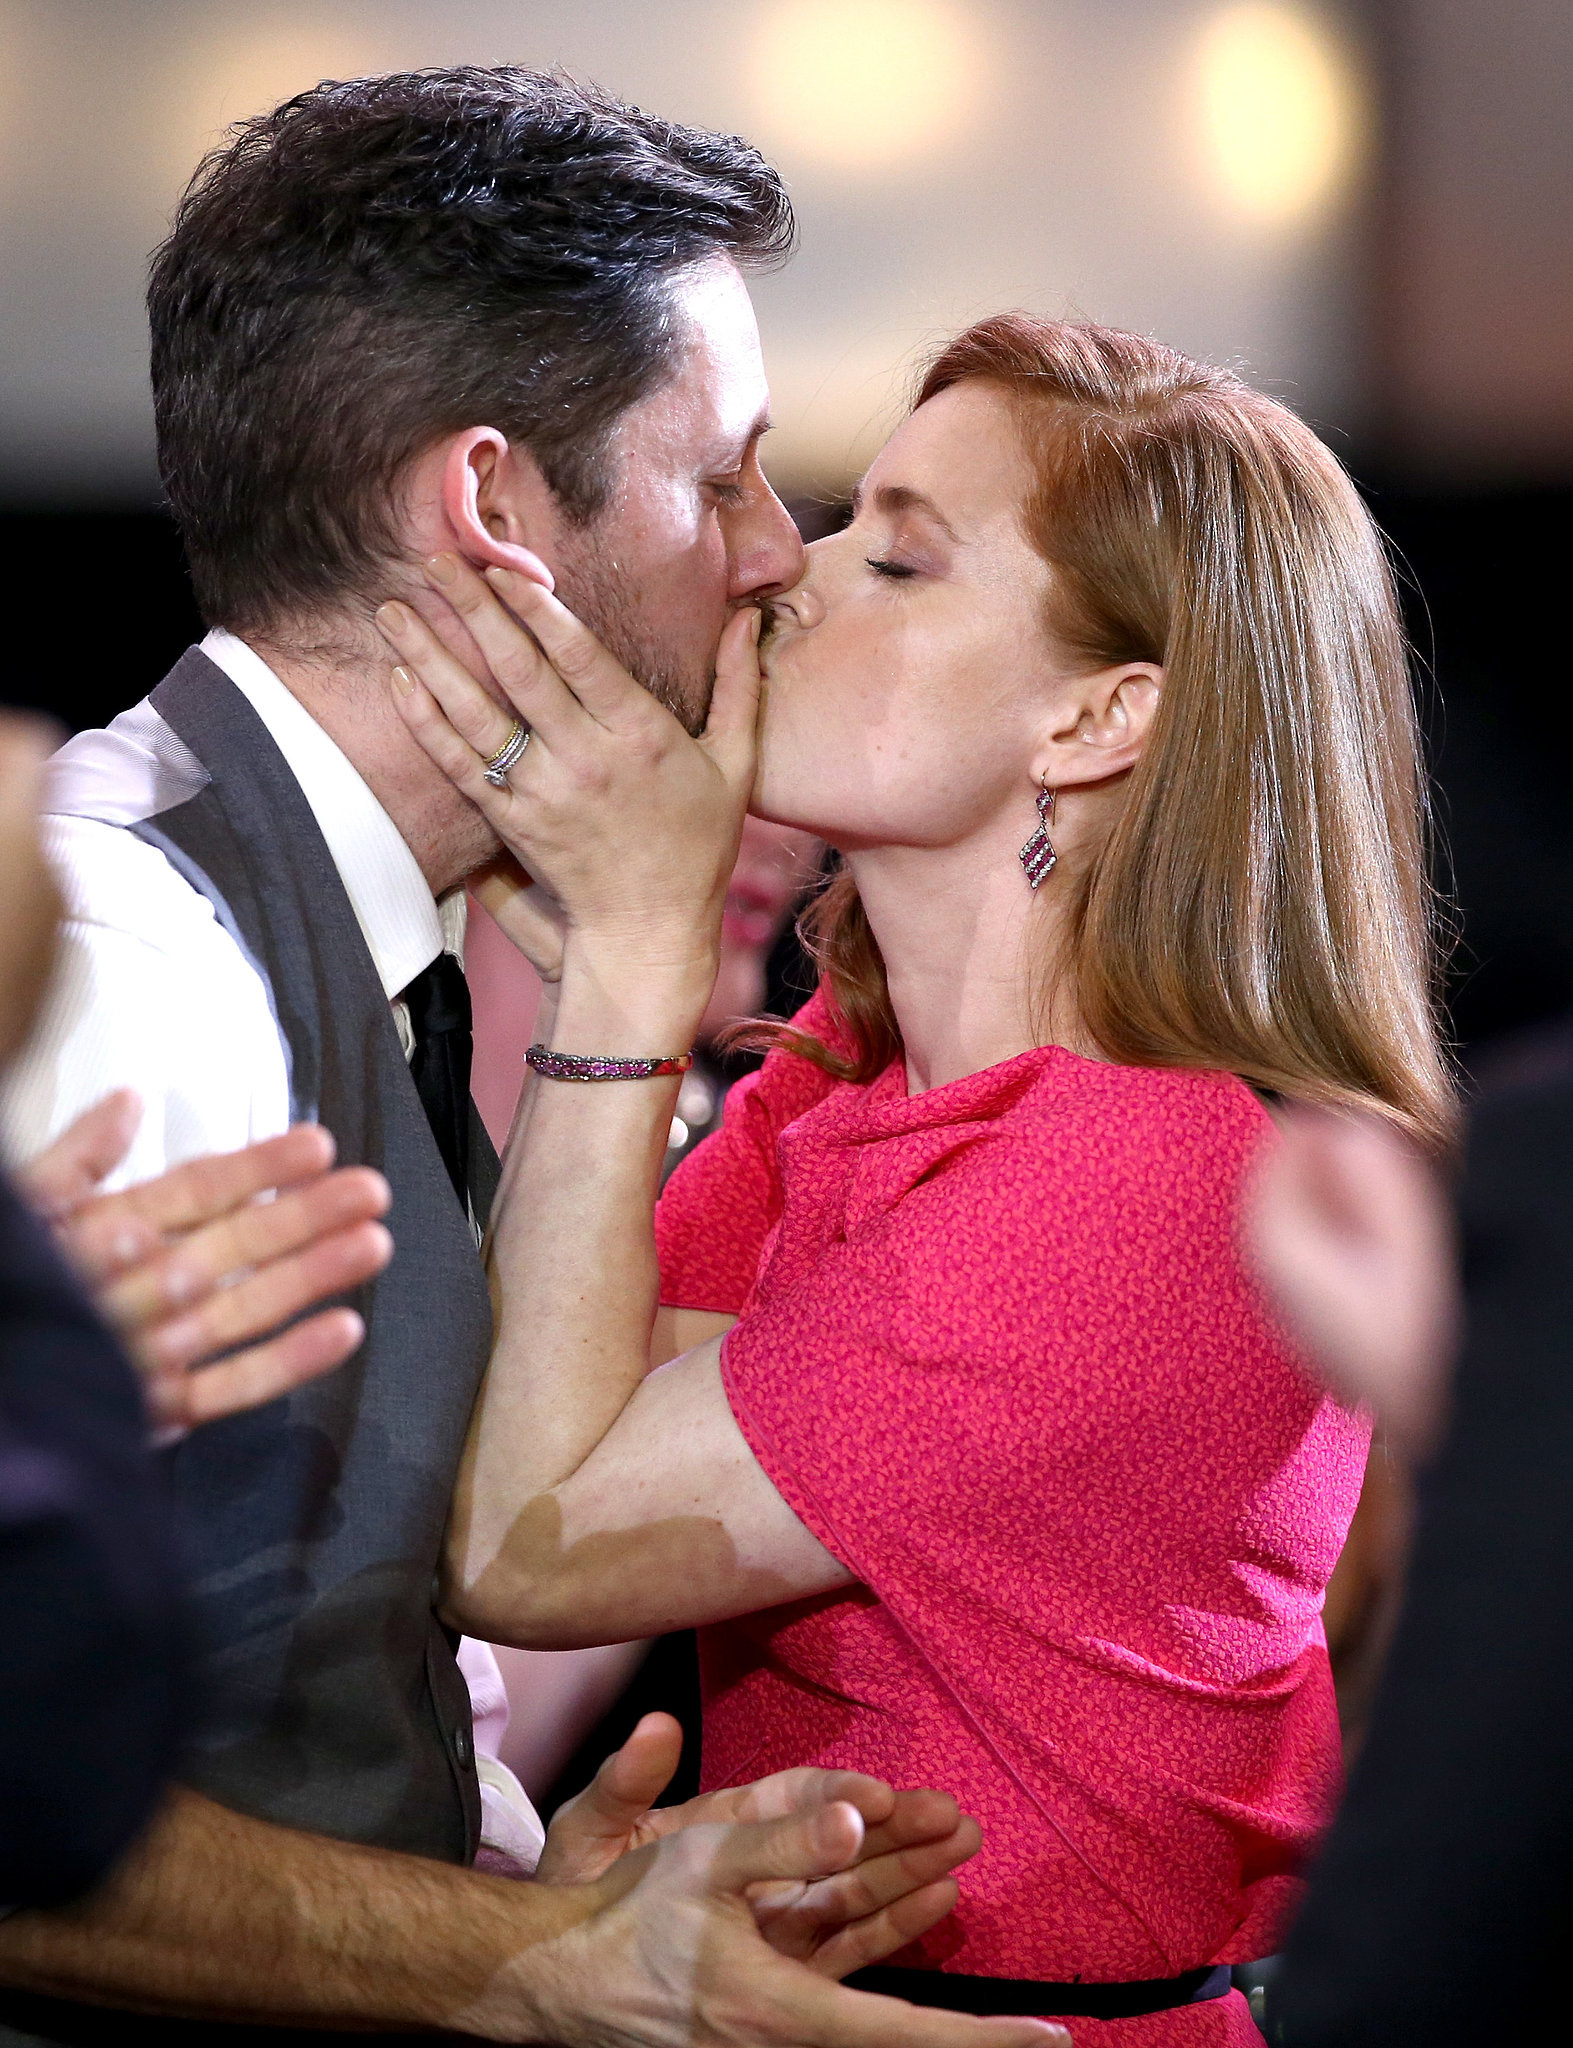 At the Critics' Choice Awards, Amy Adams kissed her partner before heading up to the stage.